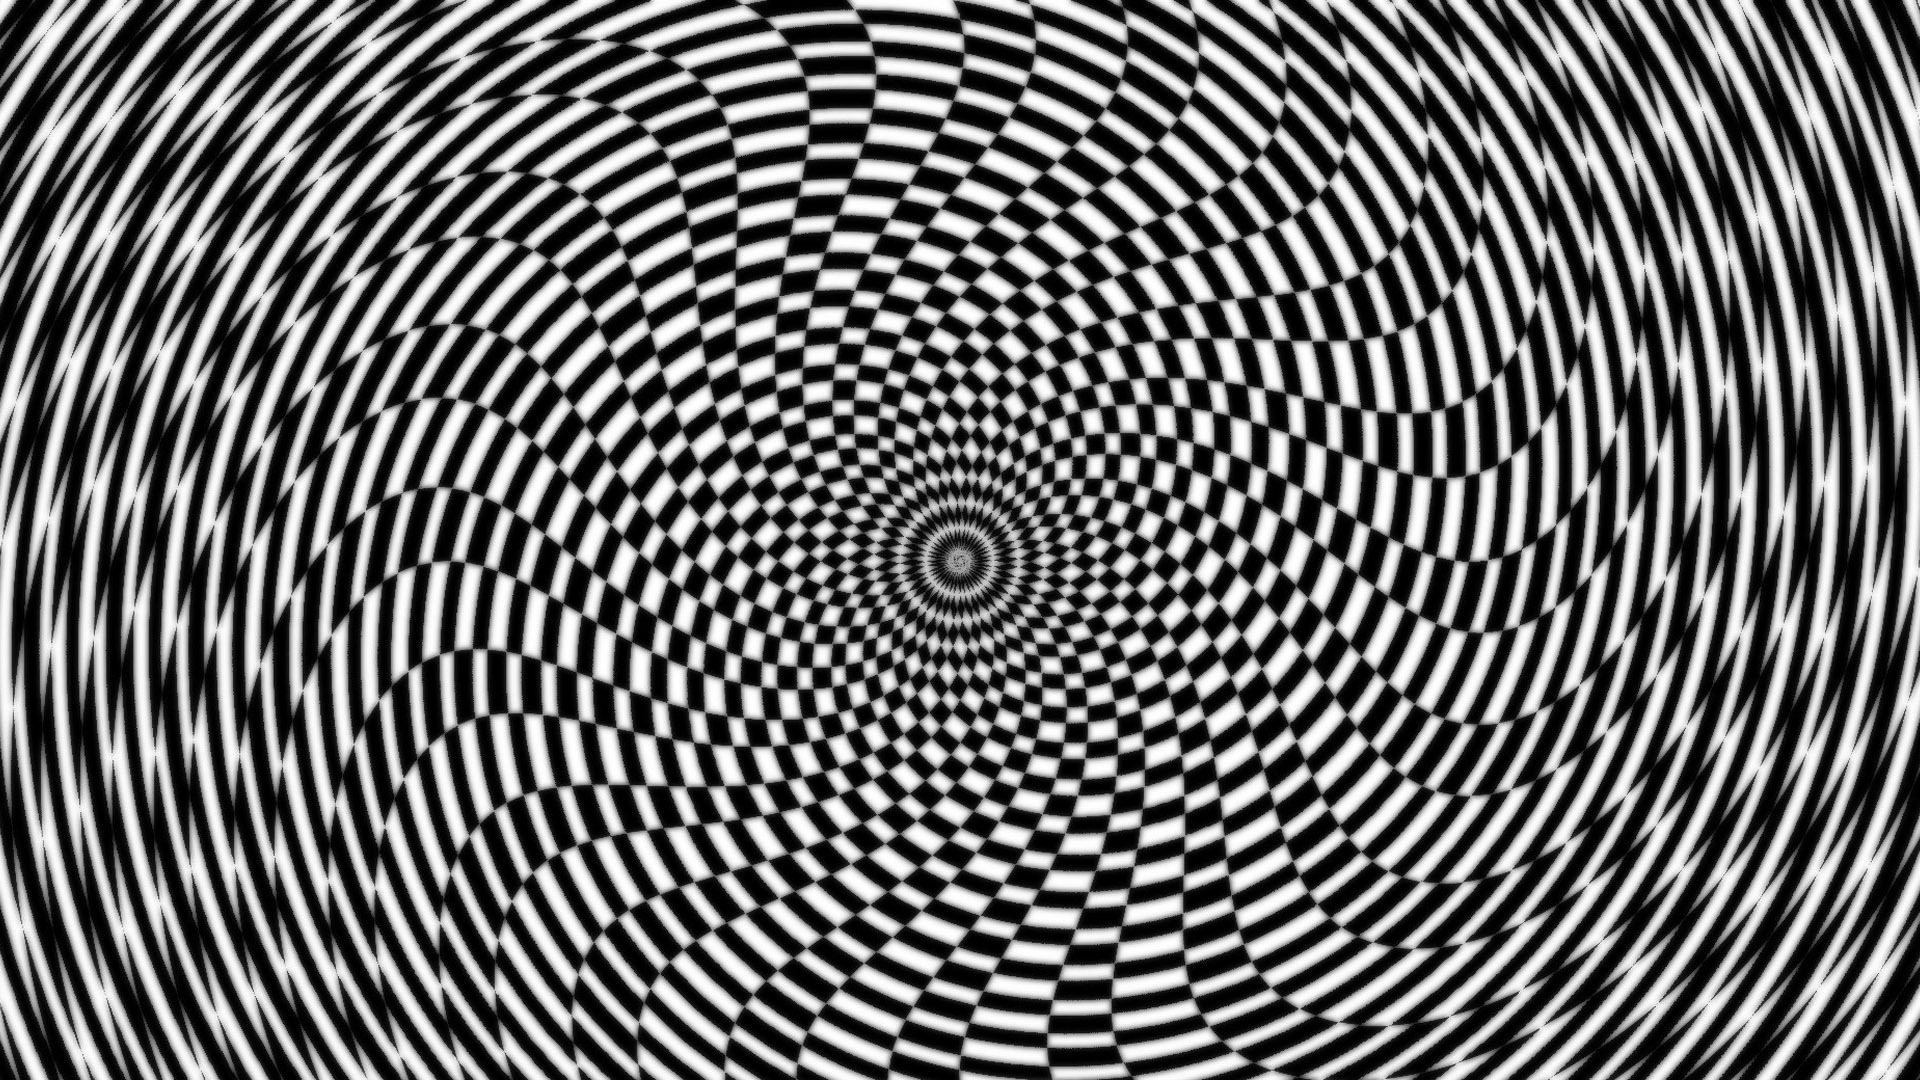 Optical Illusions Wallpapers  Wallpaper  1920x1080